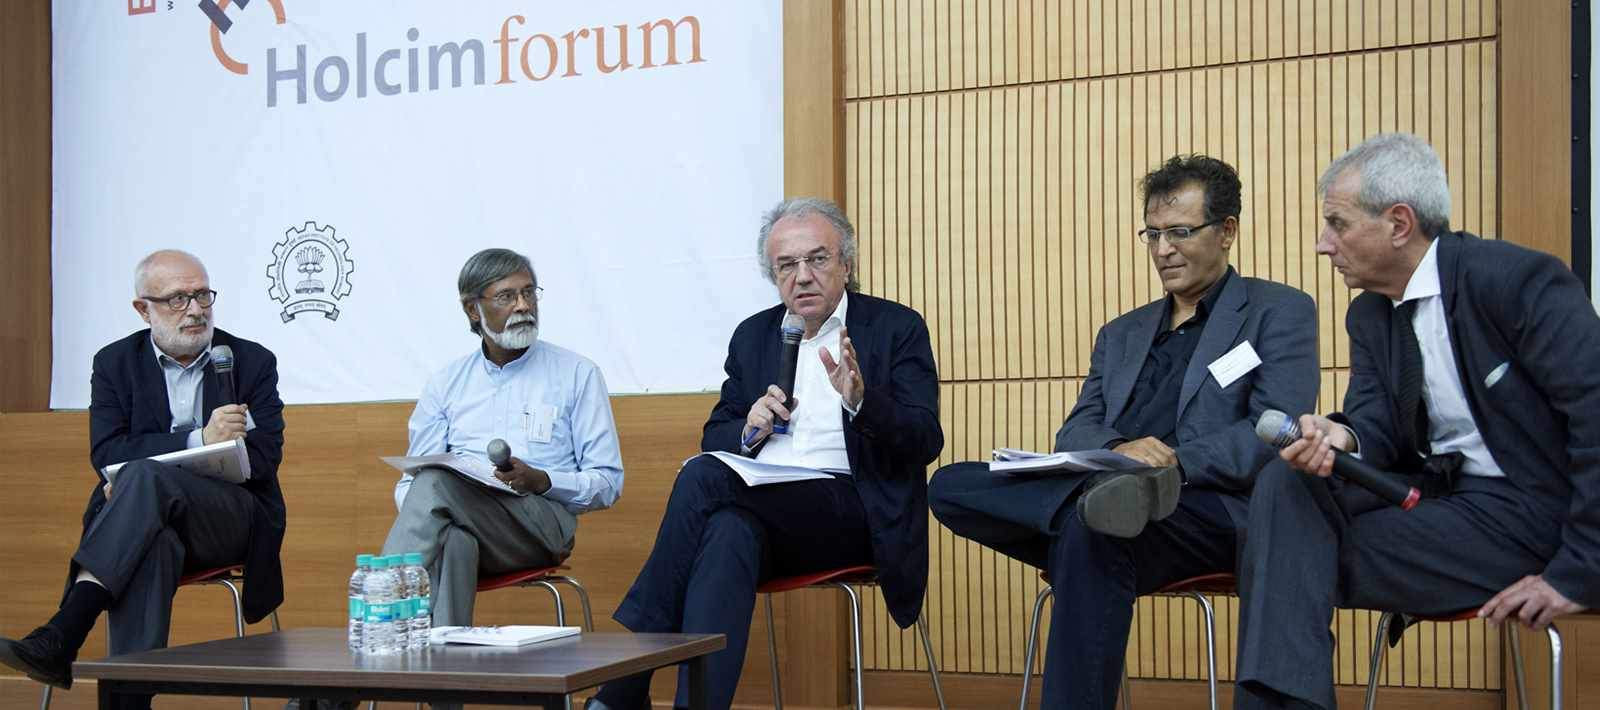 4th Forum in Mumbai, India 2013: Concluding debate discussing workshop findings (l-r): …